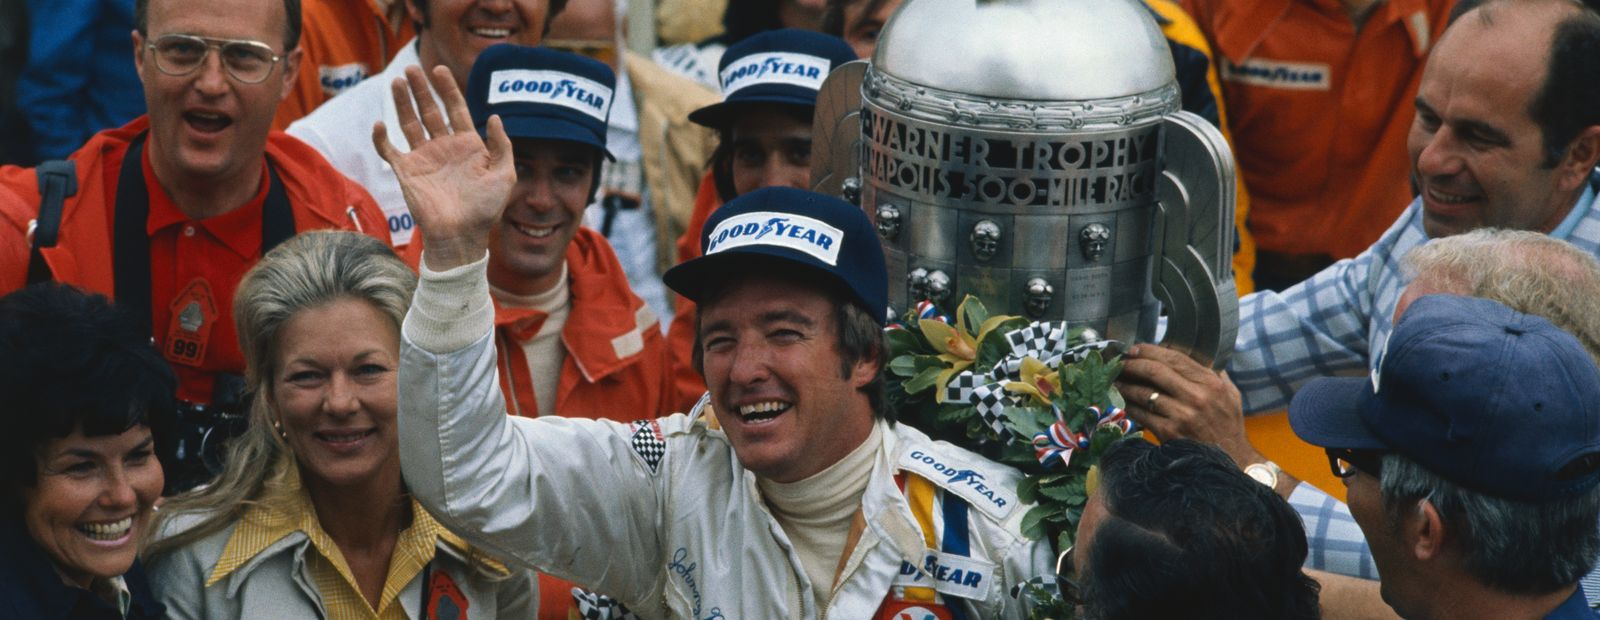 Johnny Rutherford returns to McLaren for the month of May